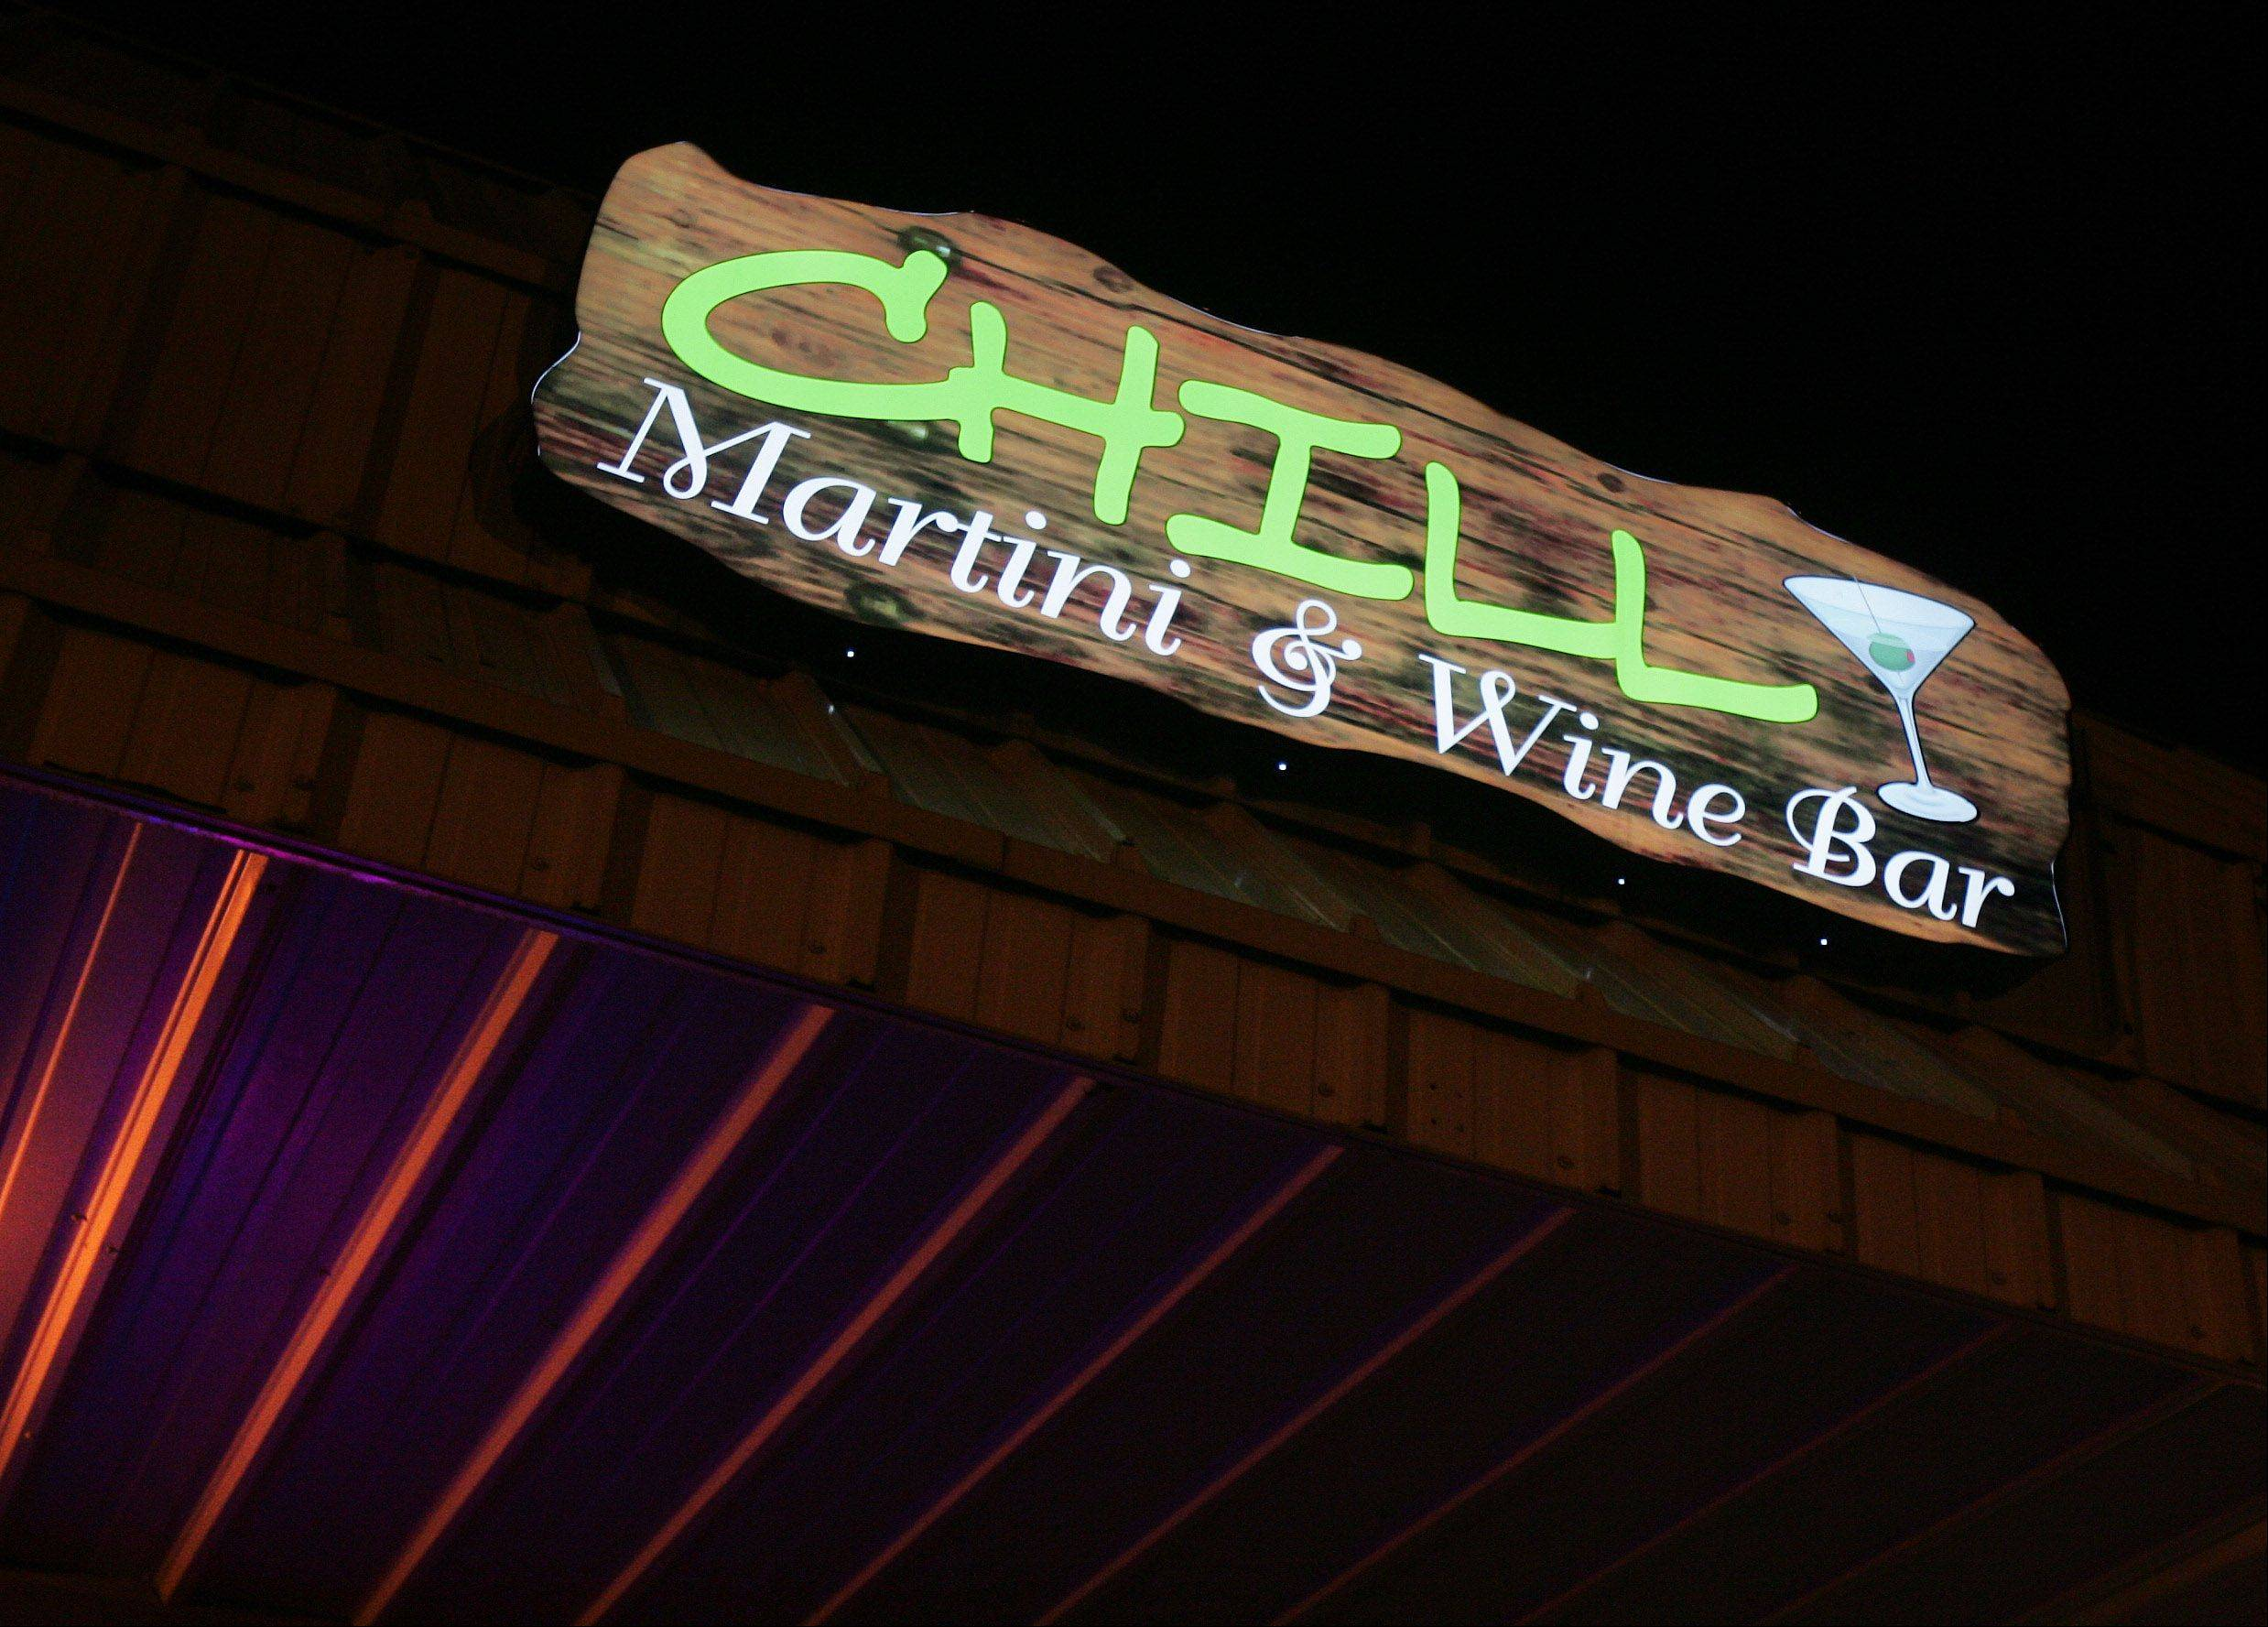 Chill Martini & Wine Bar opened last February in Lake Villa.